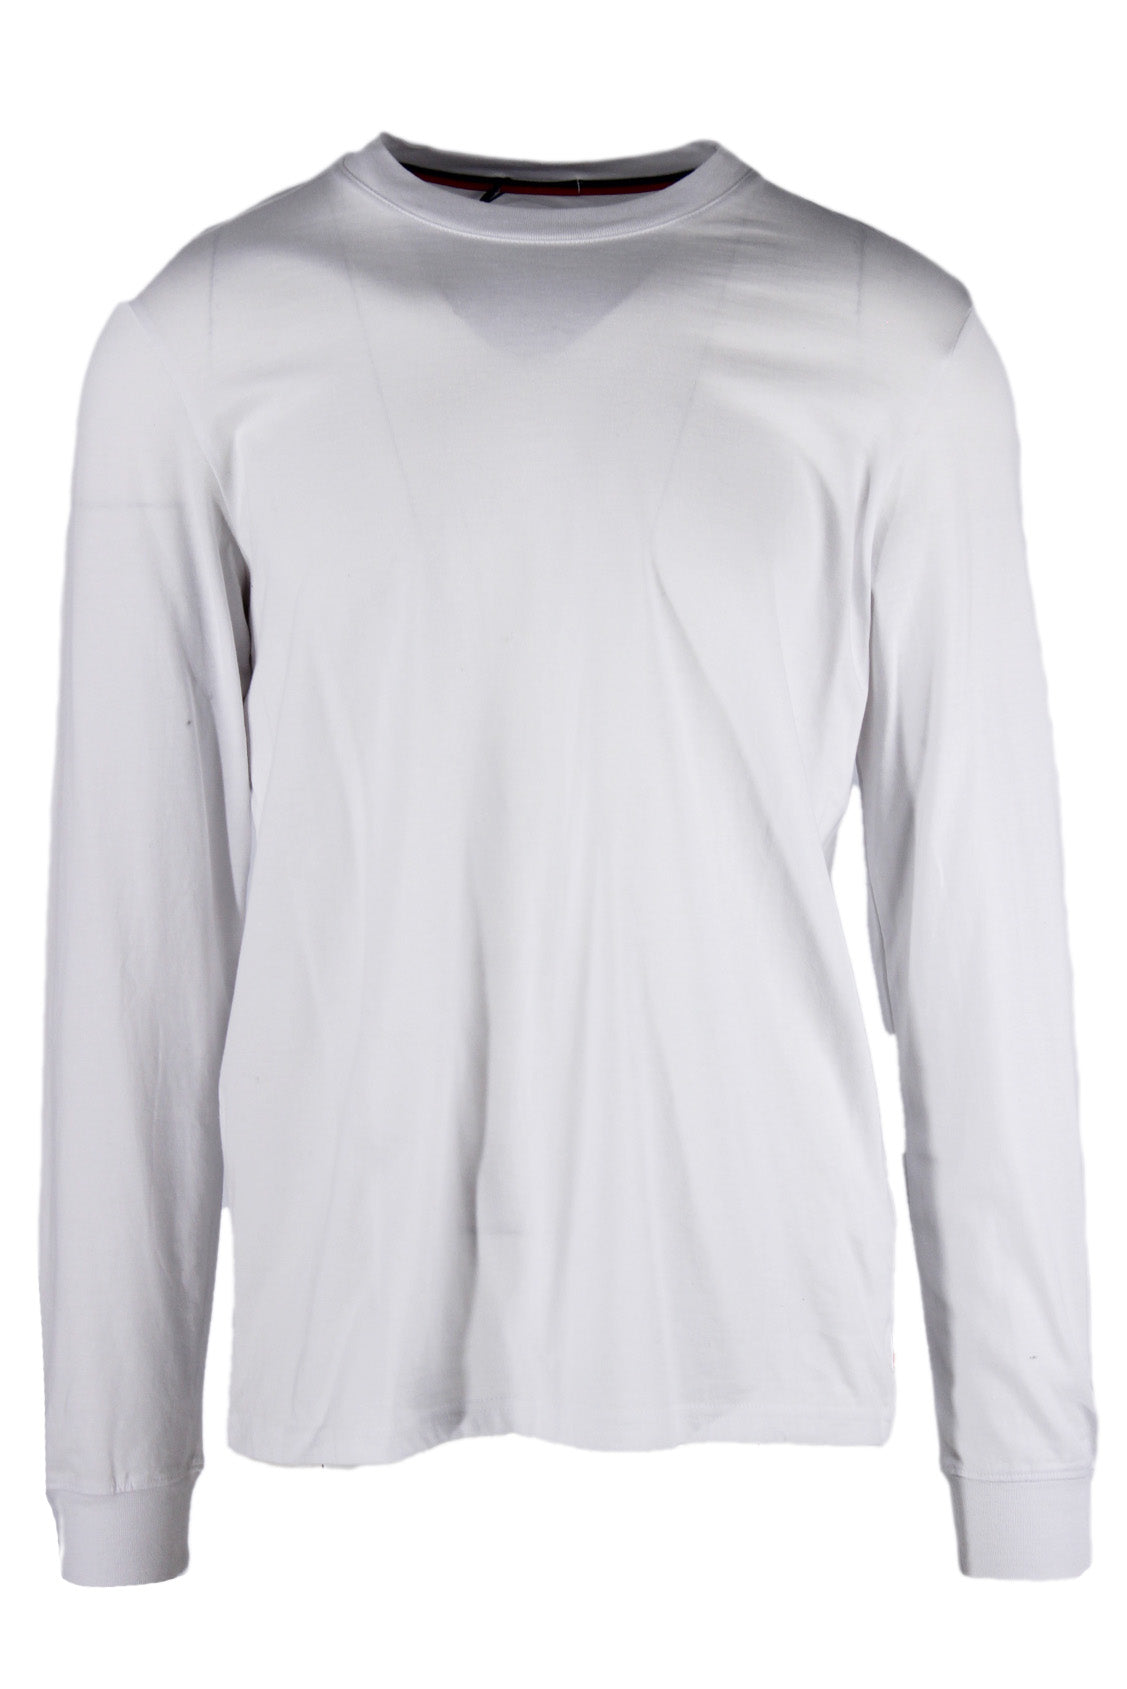 herschel white long sleeve shirt. features white exterior, long sleeves and round neckline.